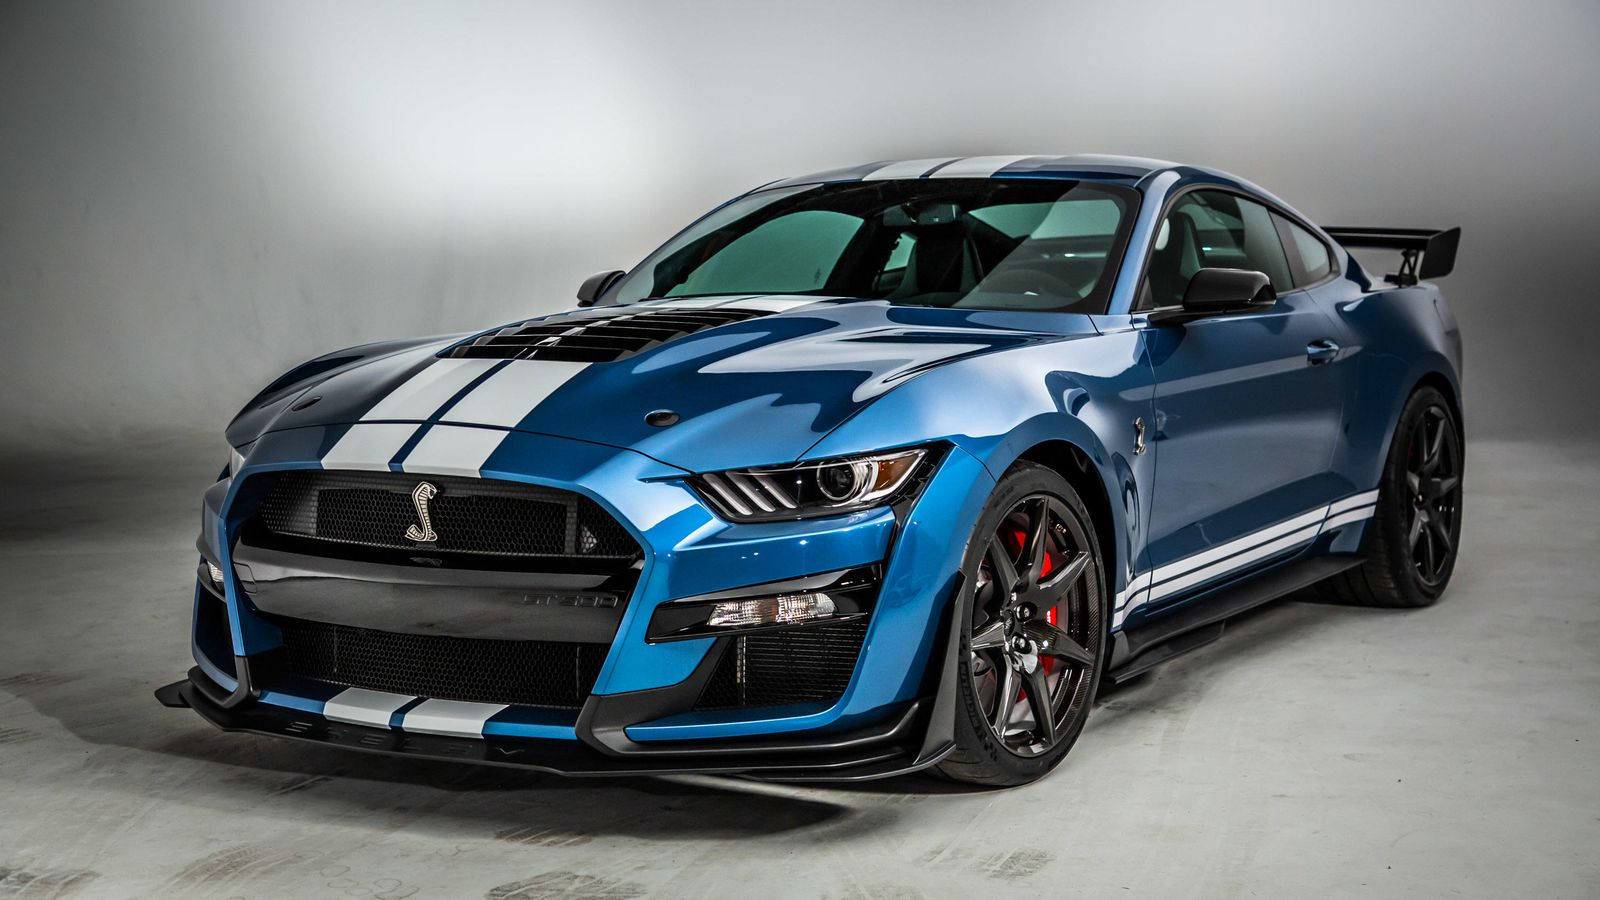 39 The Best 2020 Mustang Shelby Gt350 Speed Test